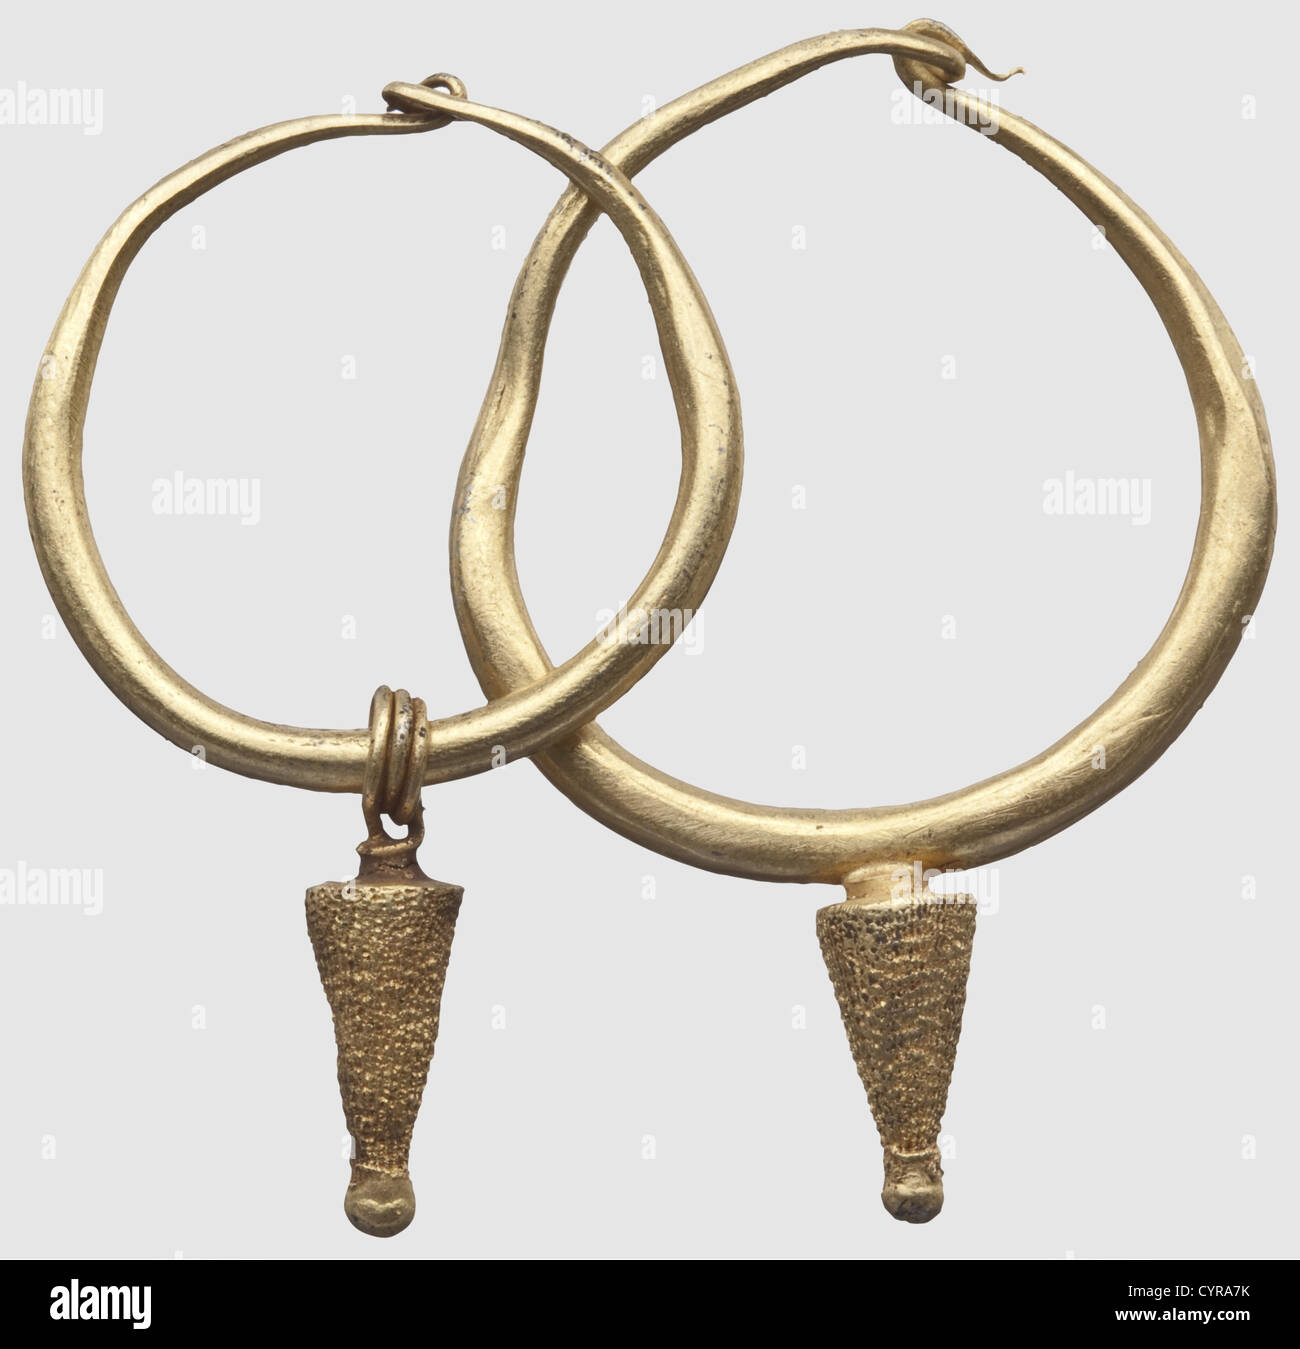 A Minoan pair of golden earrings, Crete, circa 1500 B.C. Earrings of different sizes with loop shaped closures. - Stock Image